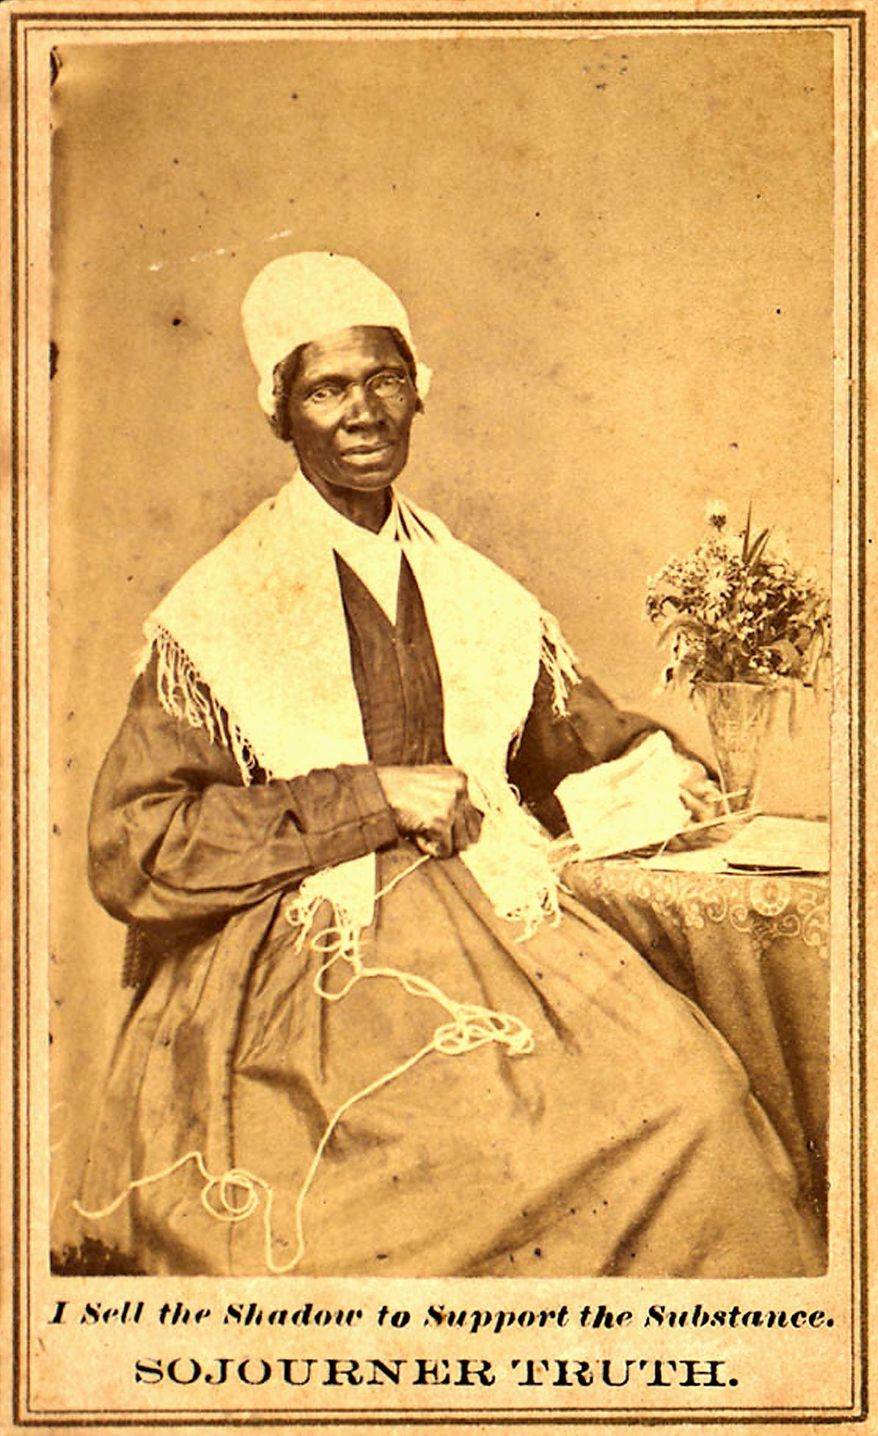 Born Isabella Baumfree into a life of slavery, Sojourner Truth fled to freedom in 1826. She went on to become an active advocate for the rights of blacks and women.